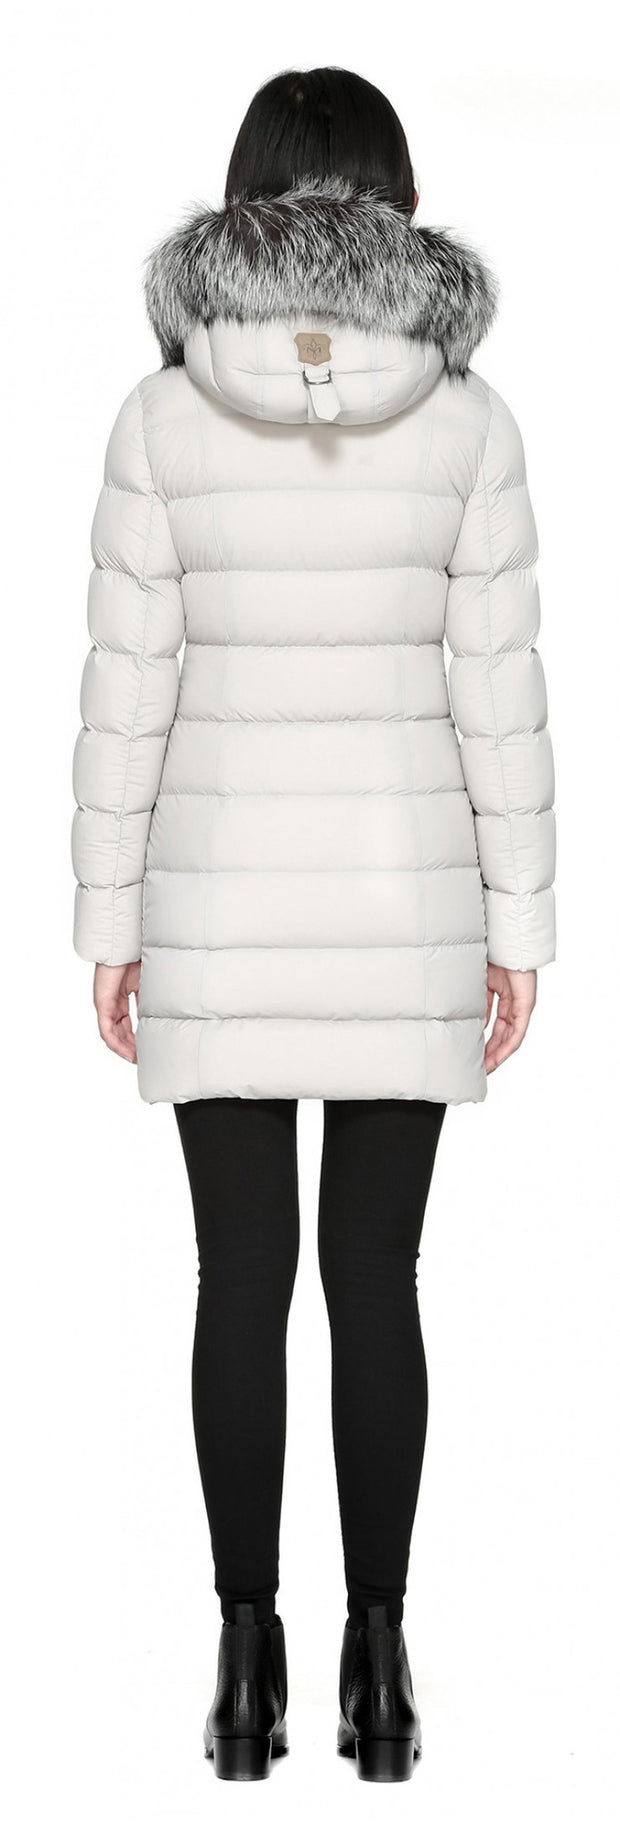 Mackage Mackage- Calla Coat Cloud at Blond Genius - 4